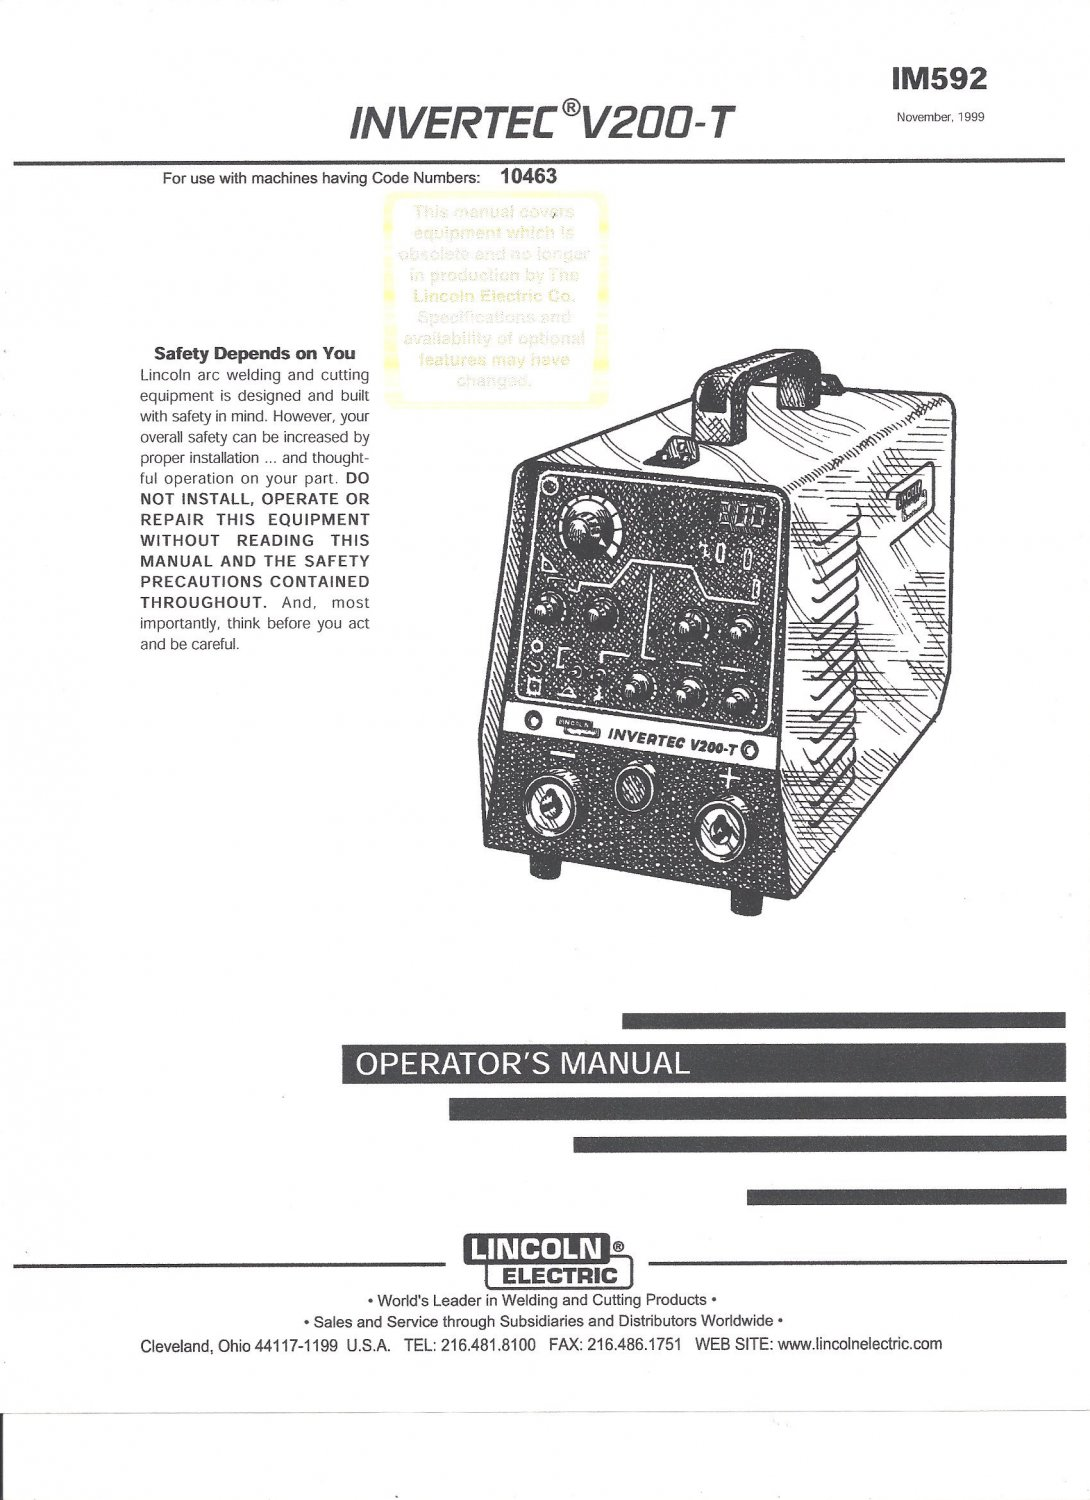 Lincoln Electric Invertec V200 T Welder Operator S Manual